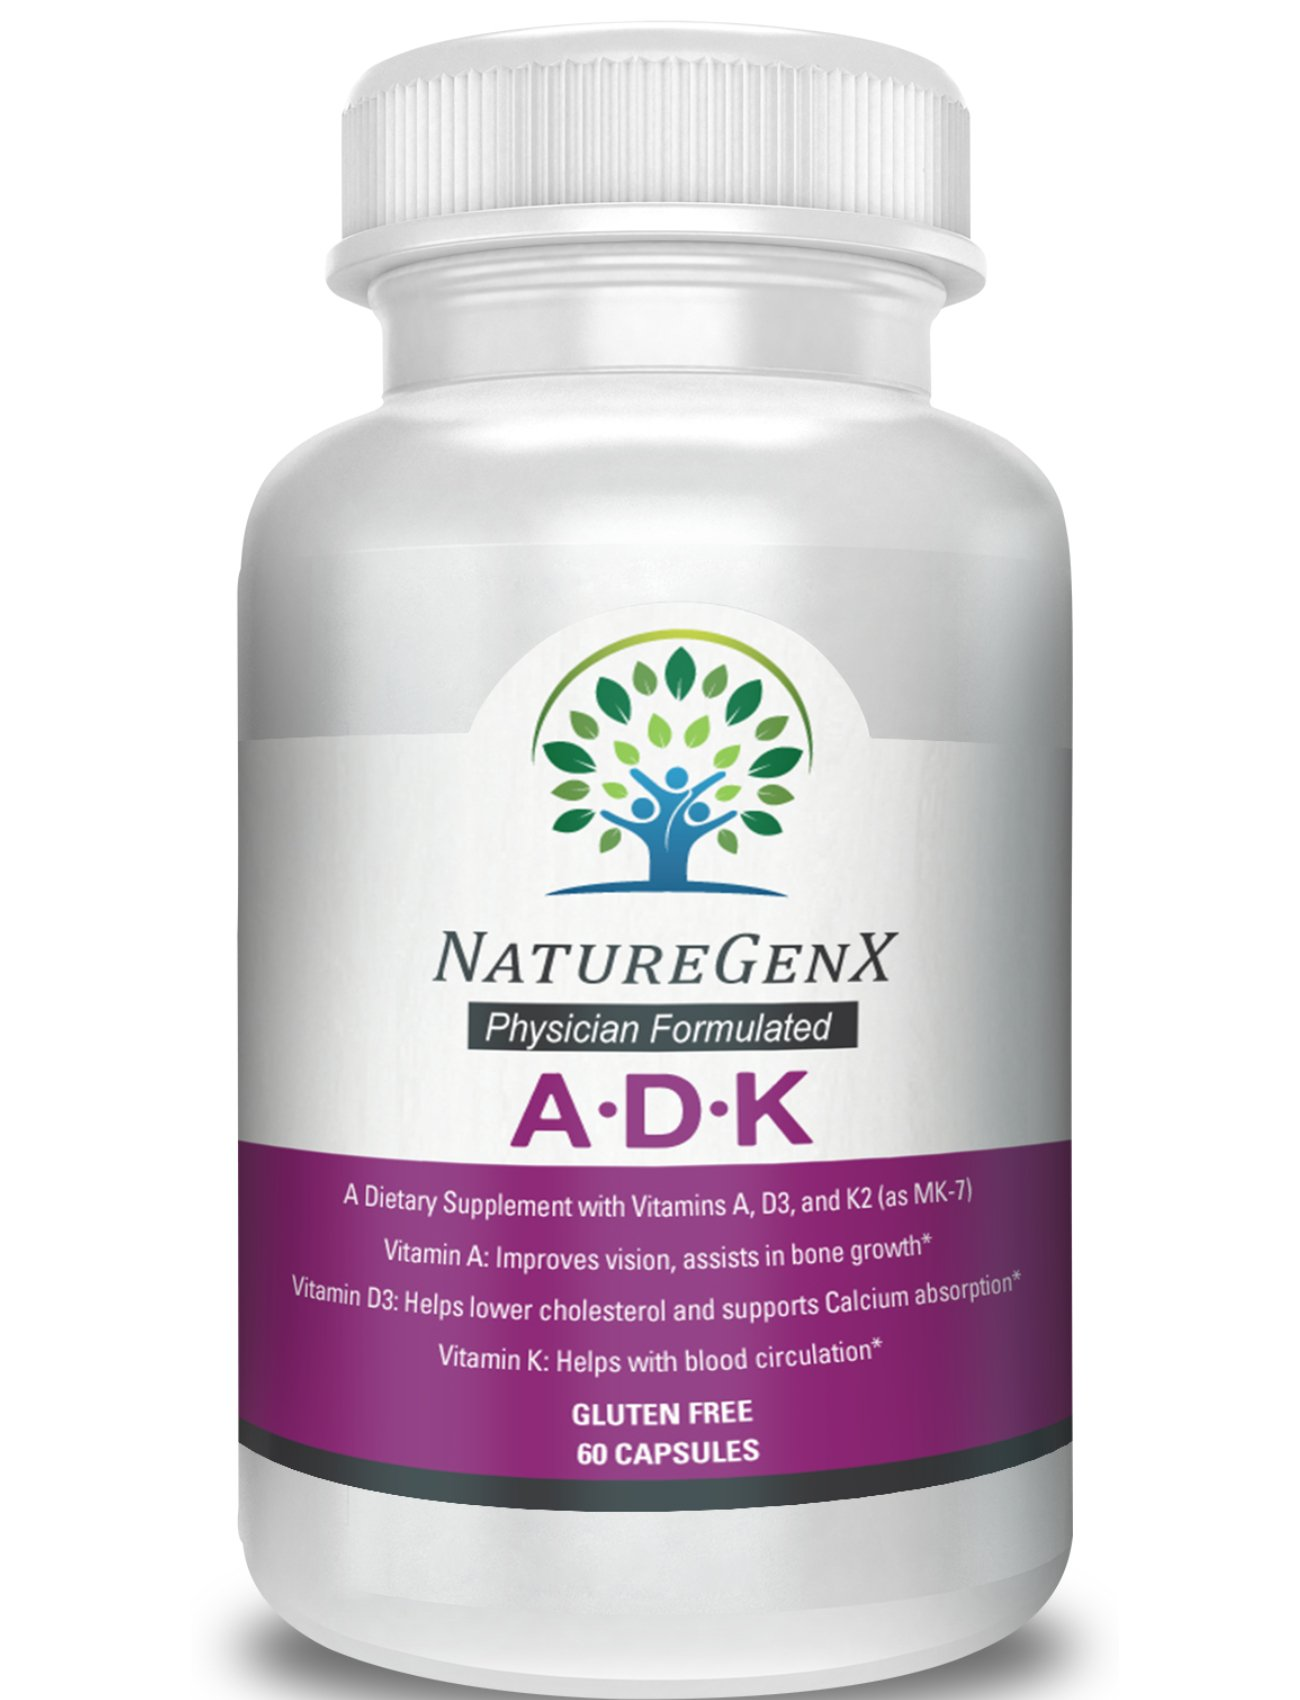 NatureGenx A.D.K - Dr. Formulated Vitamin ADK, High Potency Vitamins A 5,000 IU D3 5,000 IU K2 (as MK-7) 500mcg) Support Bone, Heart, and Immune System, Non-GMO, No Soy, 60 Capsules 2 Months Supply